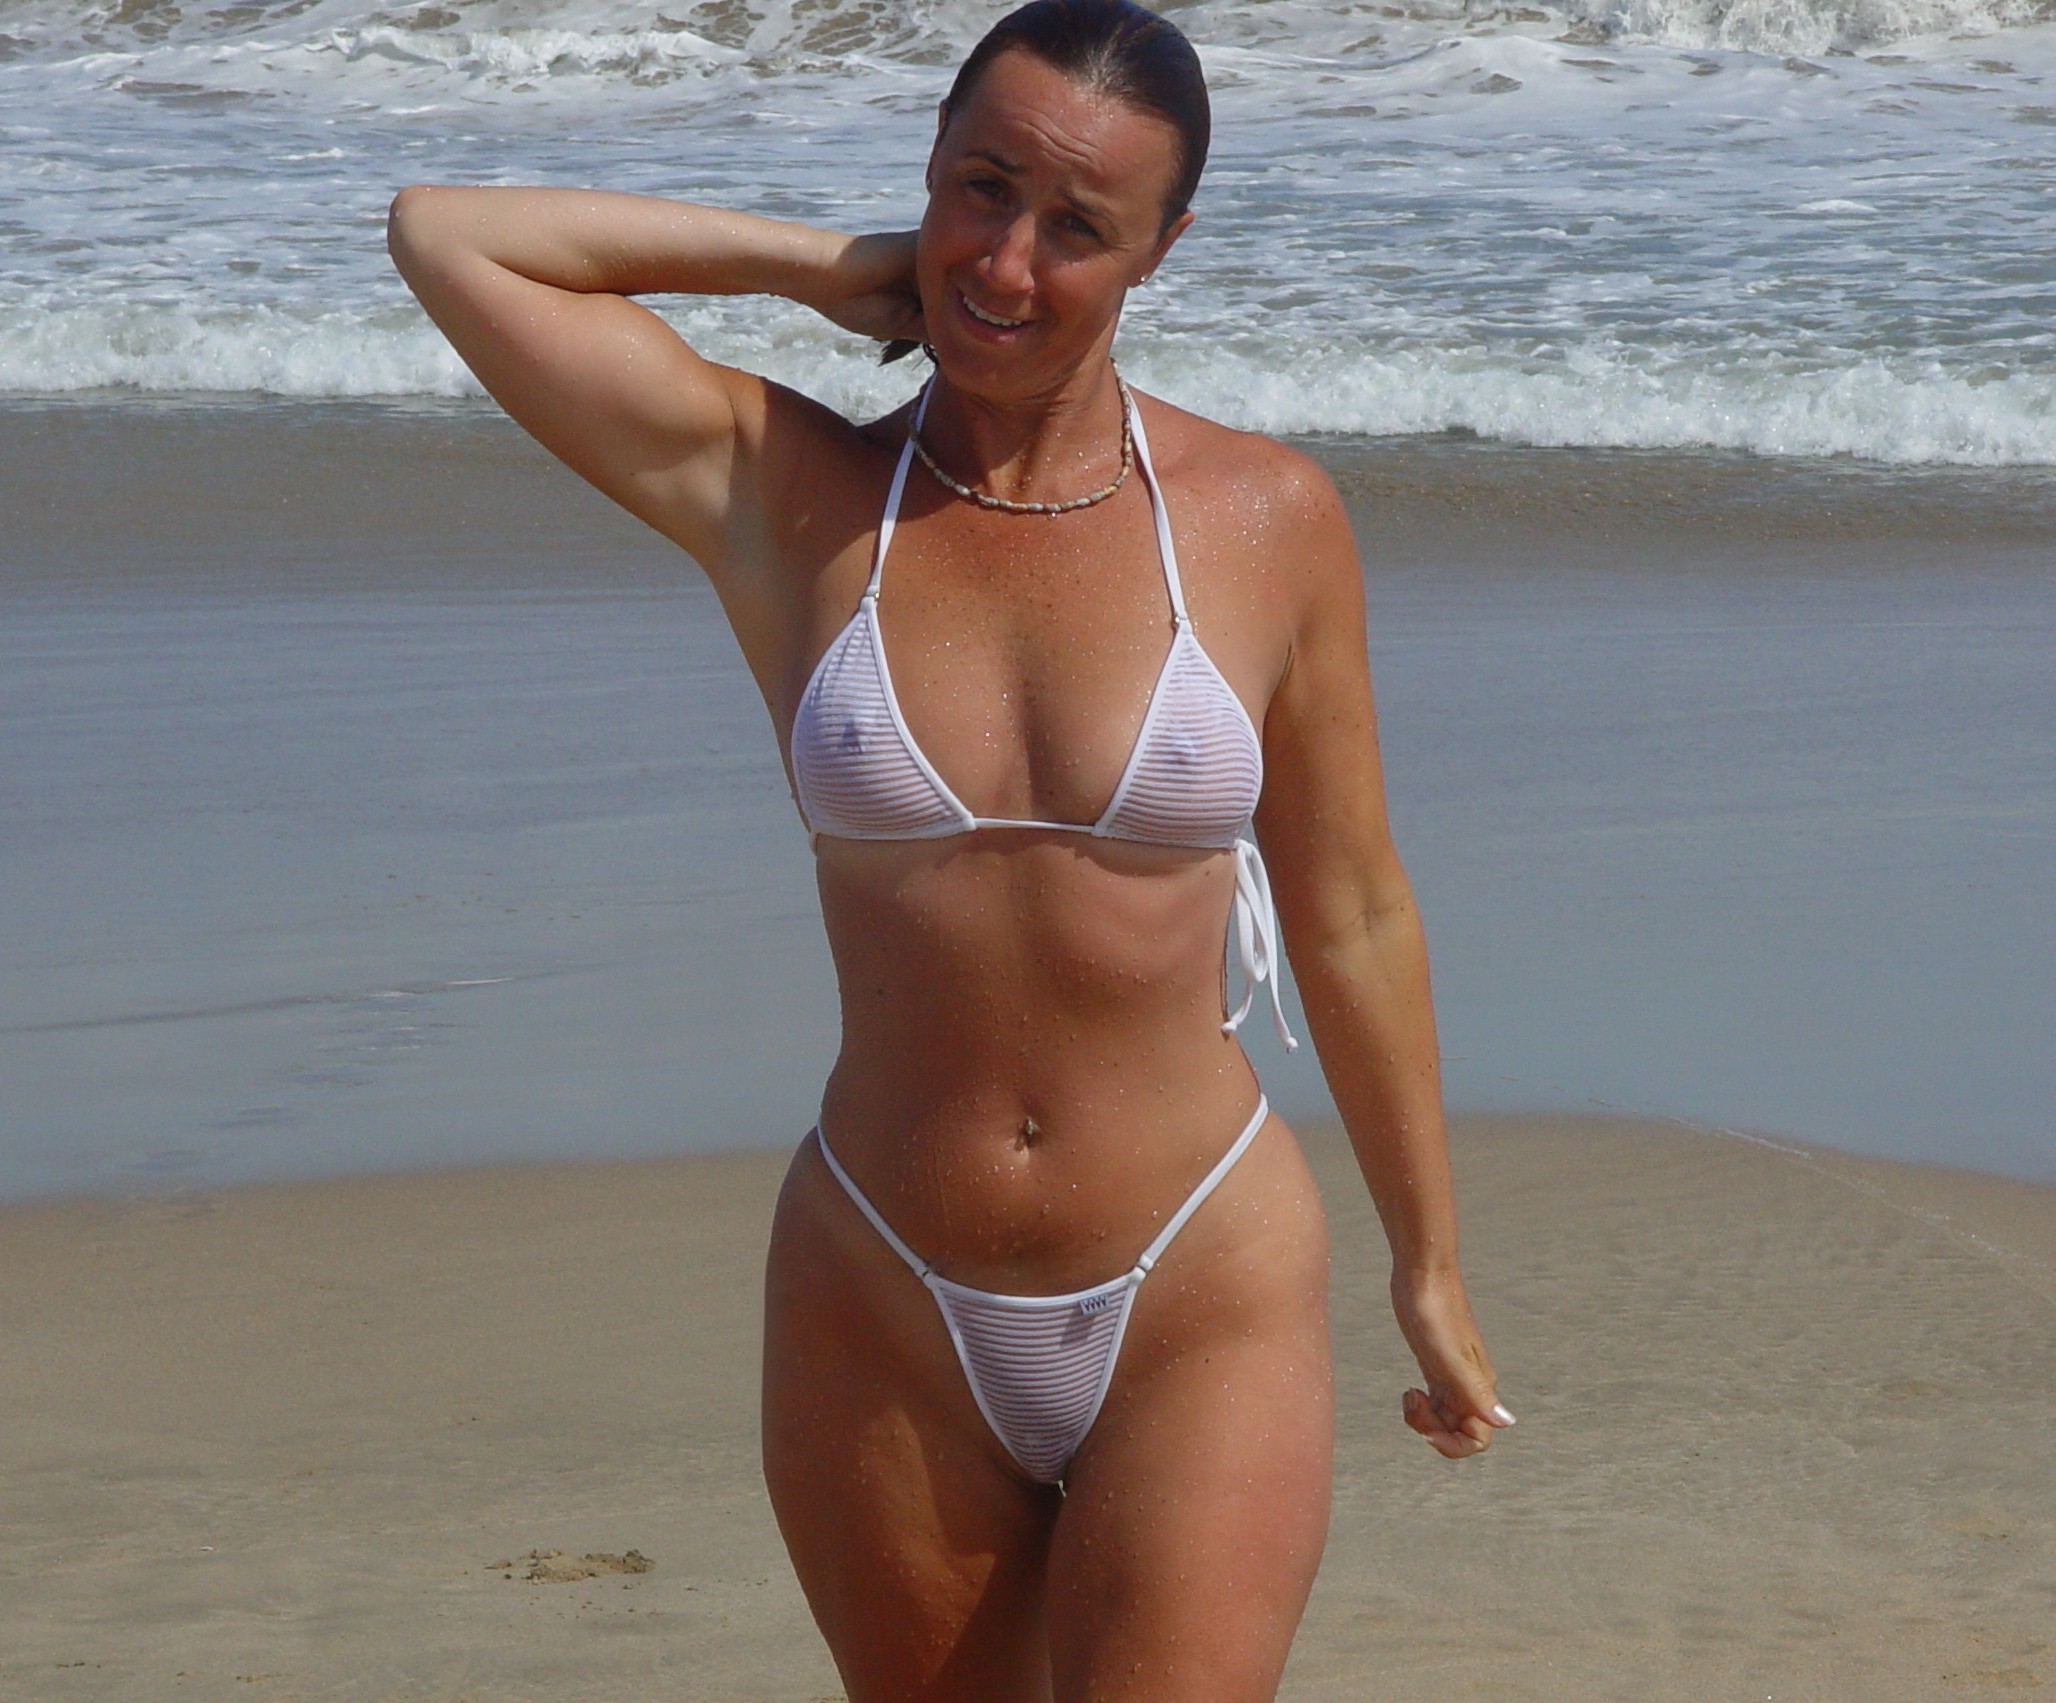 milf on the beach in a see through bikini so everyone can see her pussy and tits.